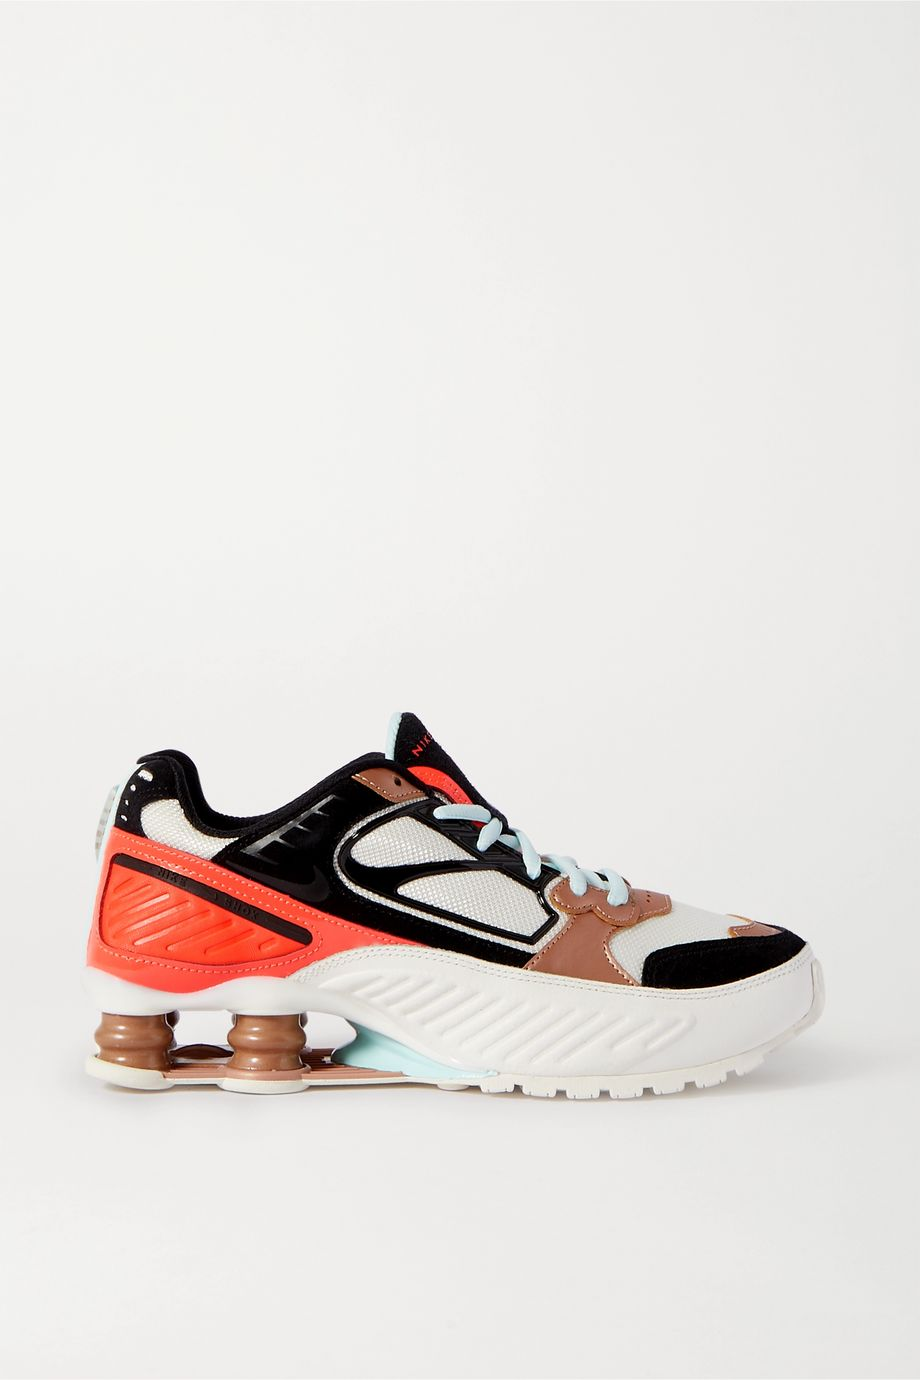 Nike Shox Enigma 9000 leather, suede and mesh sneakers